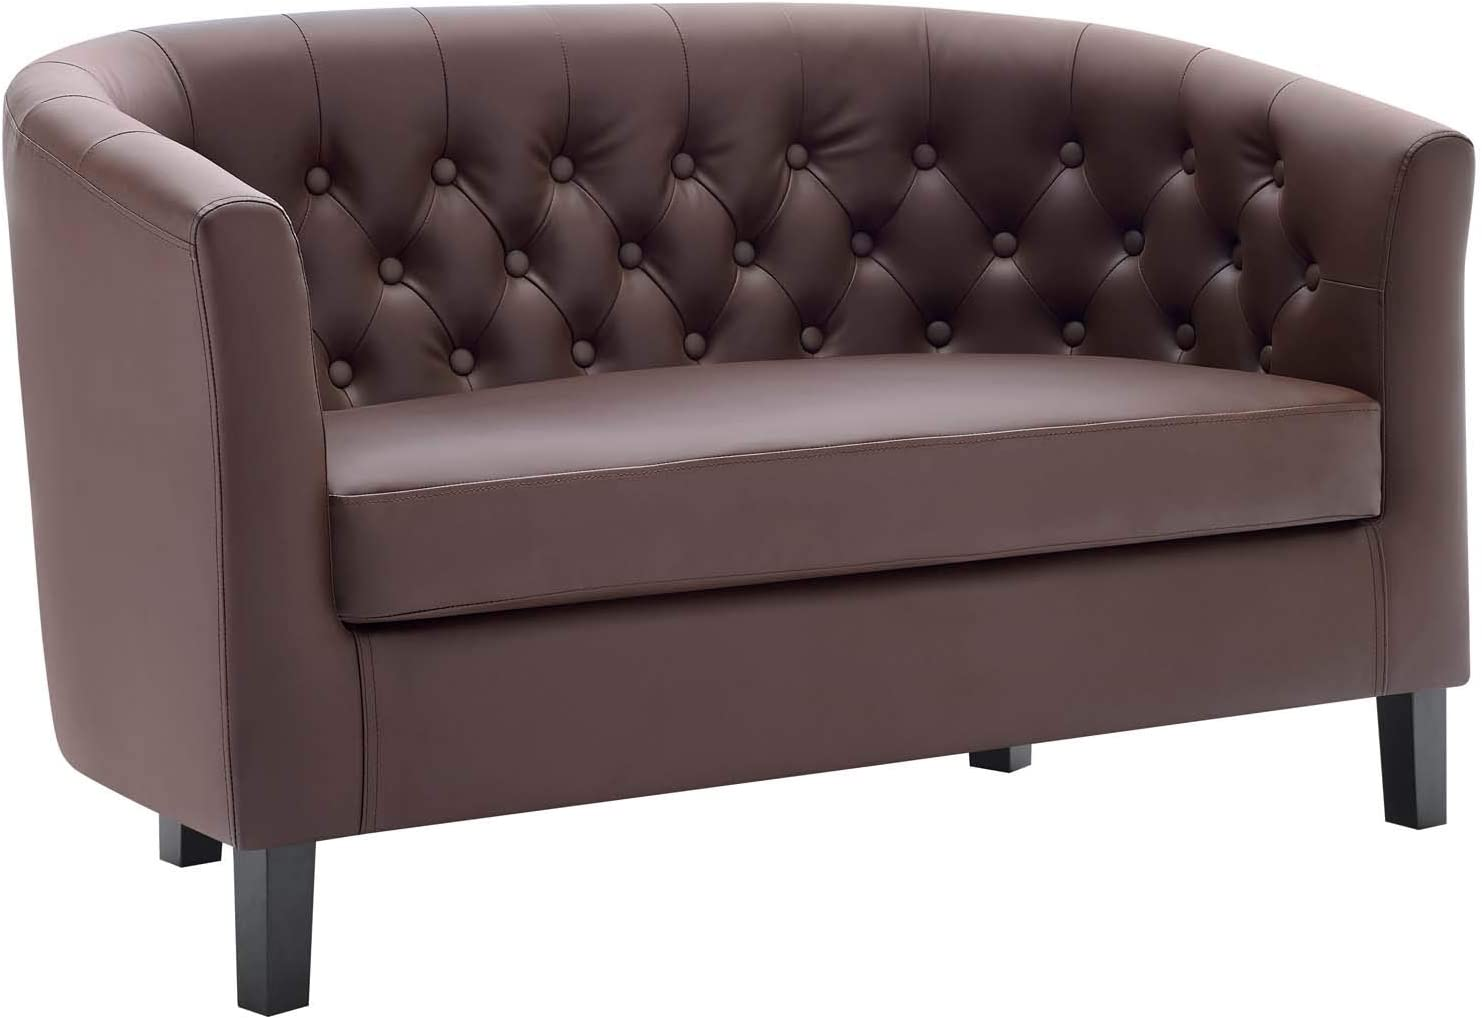 Modway Prospect Upholstered Contemporary Modern Loveseat In Brown Faux Leather